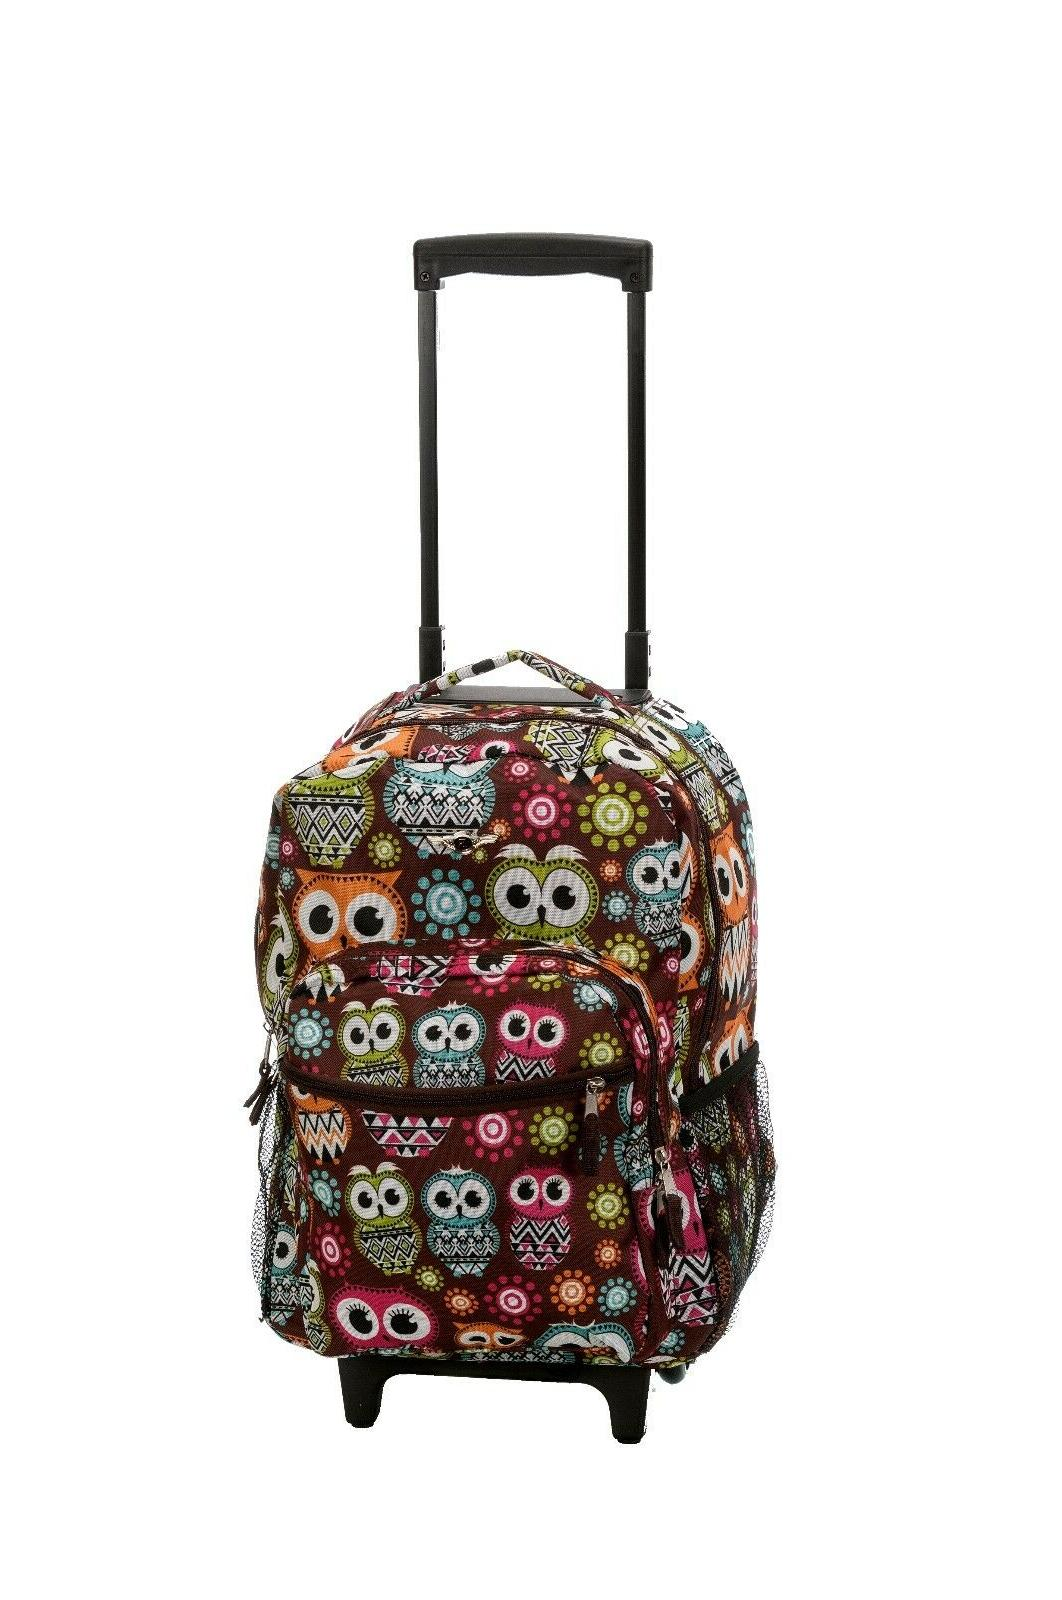 "Deluxe Wheel Backpack 17"" Carry Travel Luggage Travel"